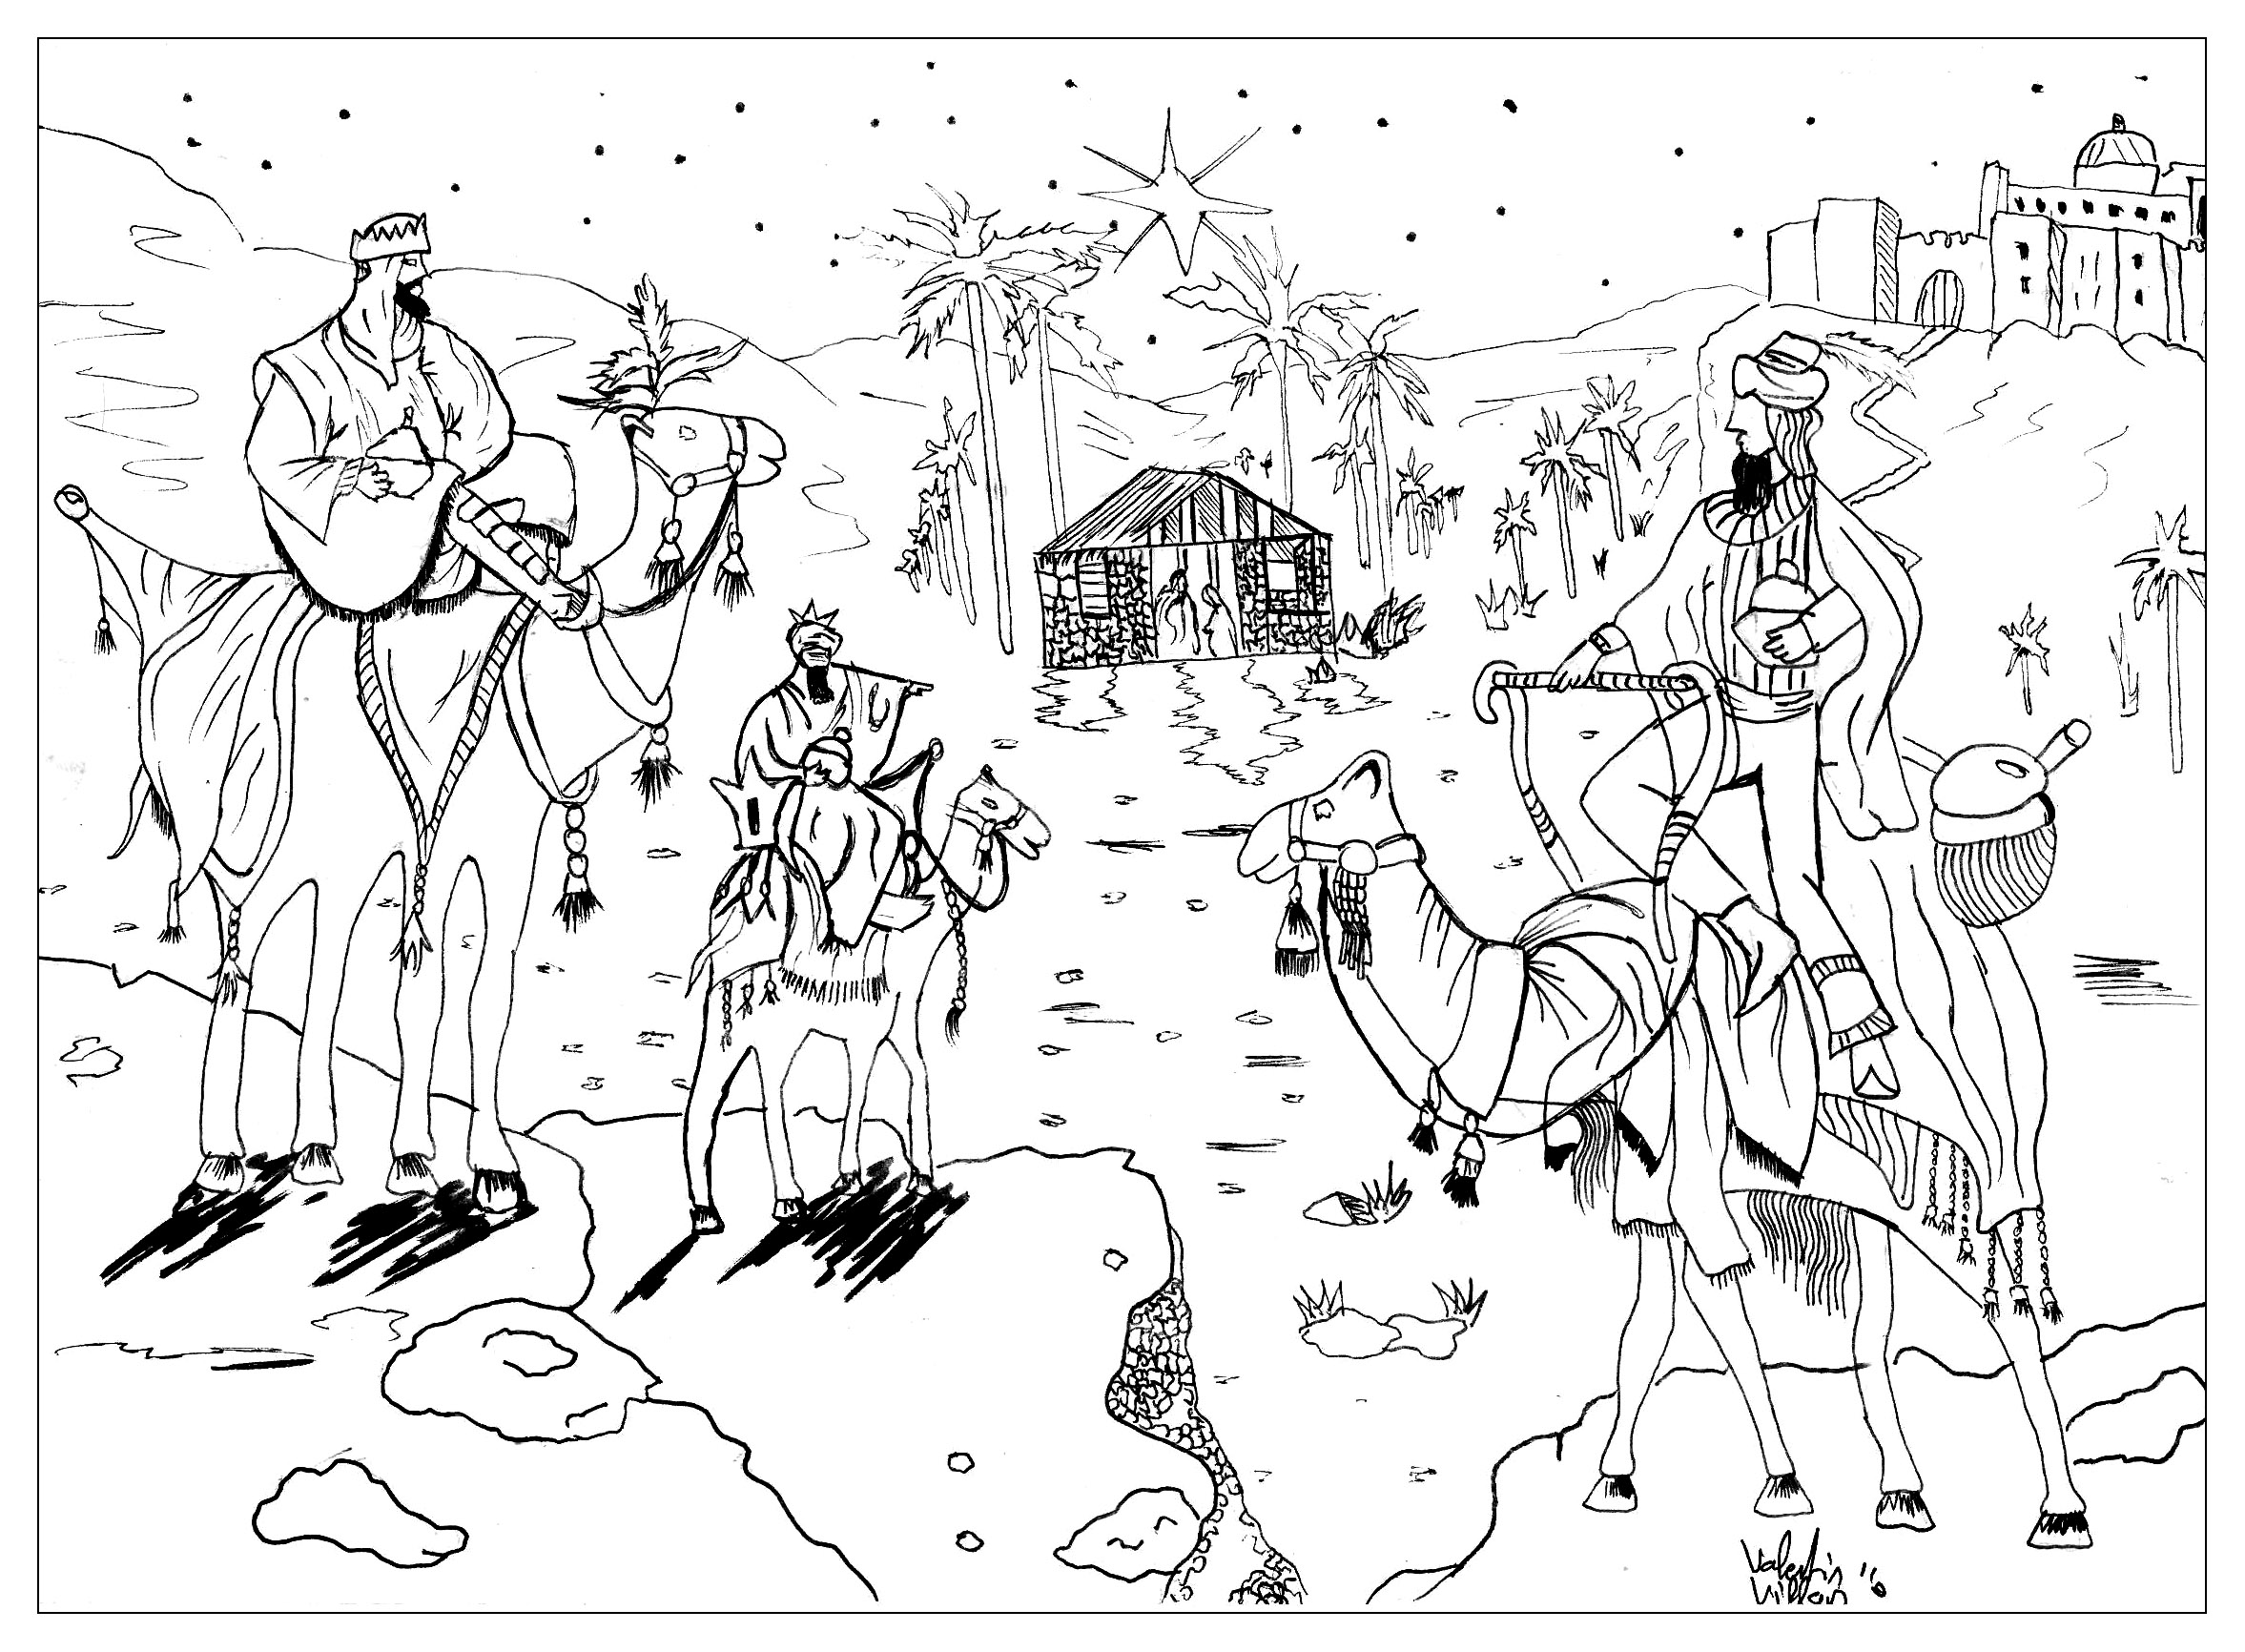 Coloring pages for king wise men melchior gaspard et balthazar